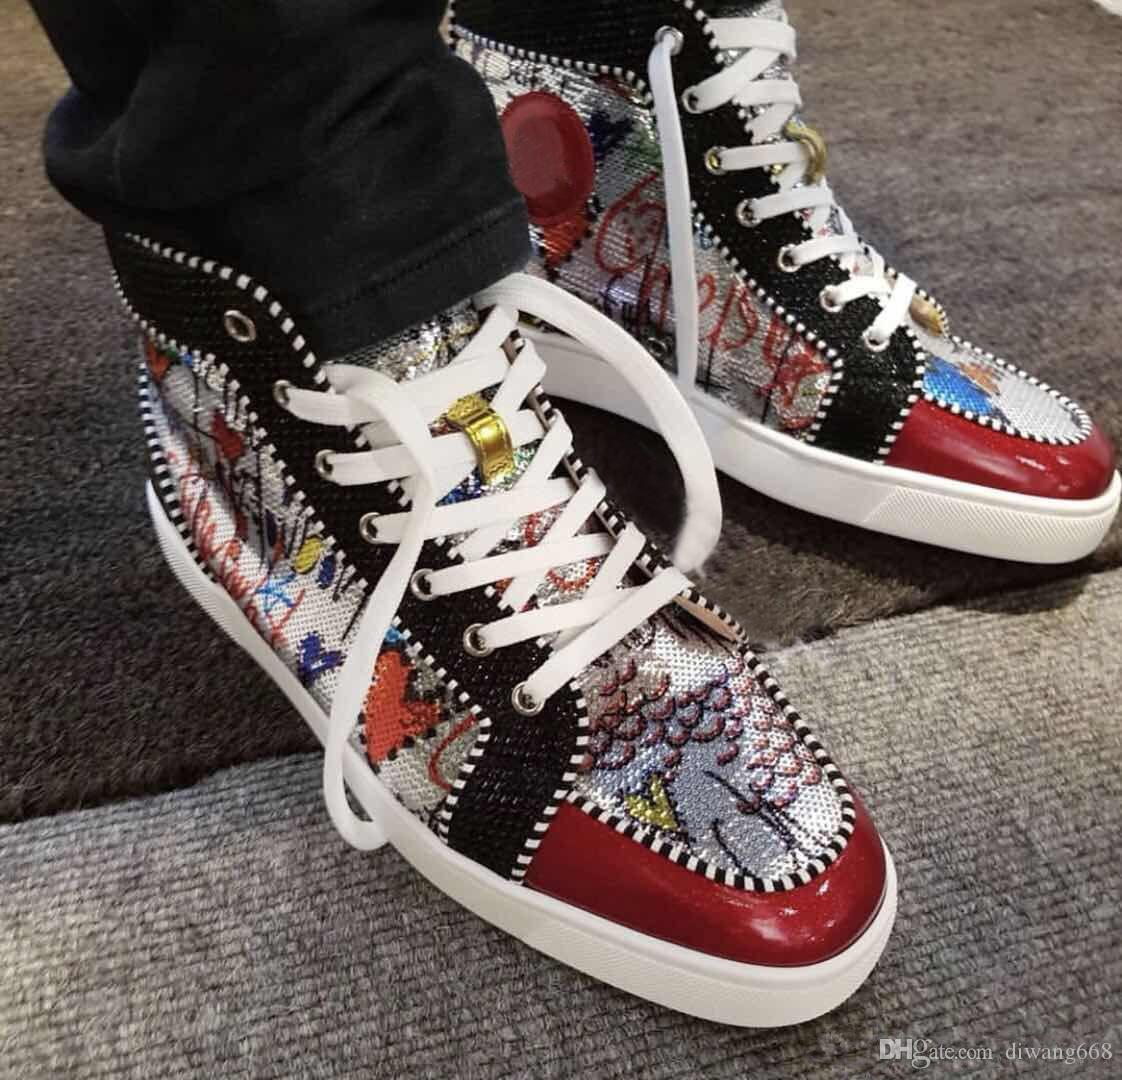 High Top Red Bottom Sneakers Glitter Graffiti Beads Outdoor Trainers Round  Toe Causal Walking Flat Outdoor Cool Streetwear Casual Shoes Casual Shoes  For Men ... 09bf931cefaa